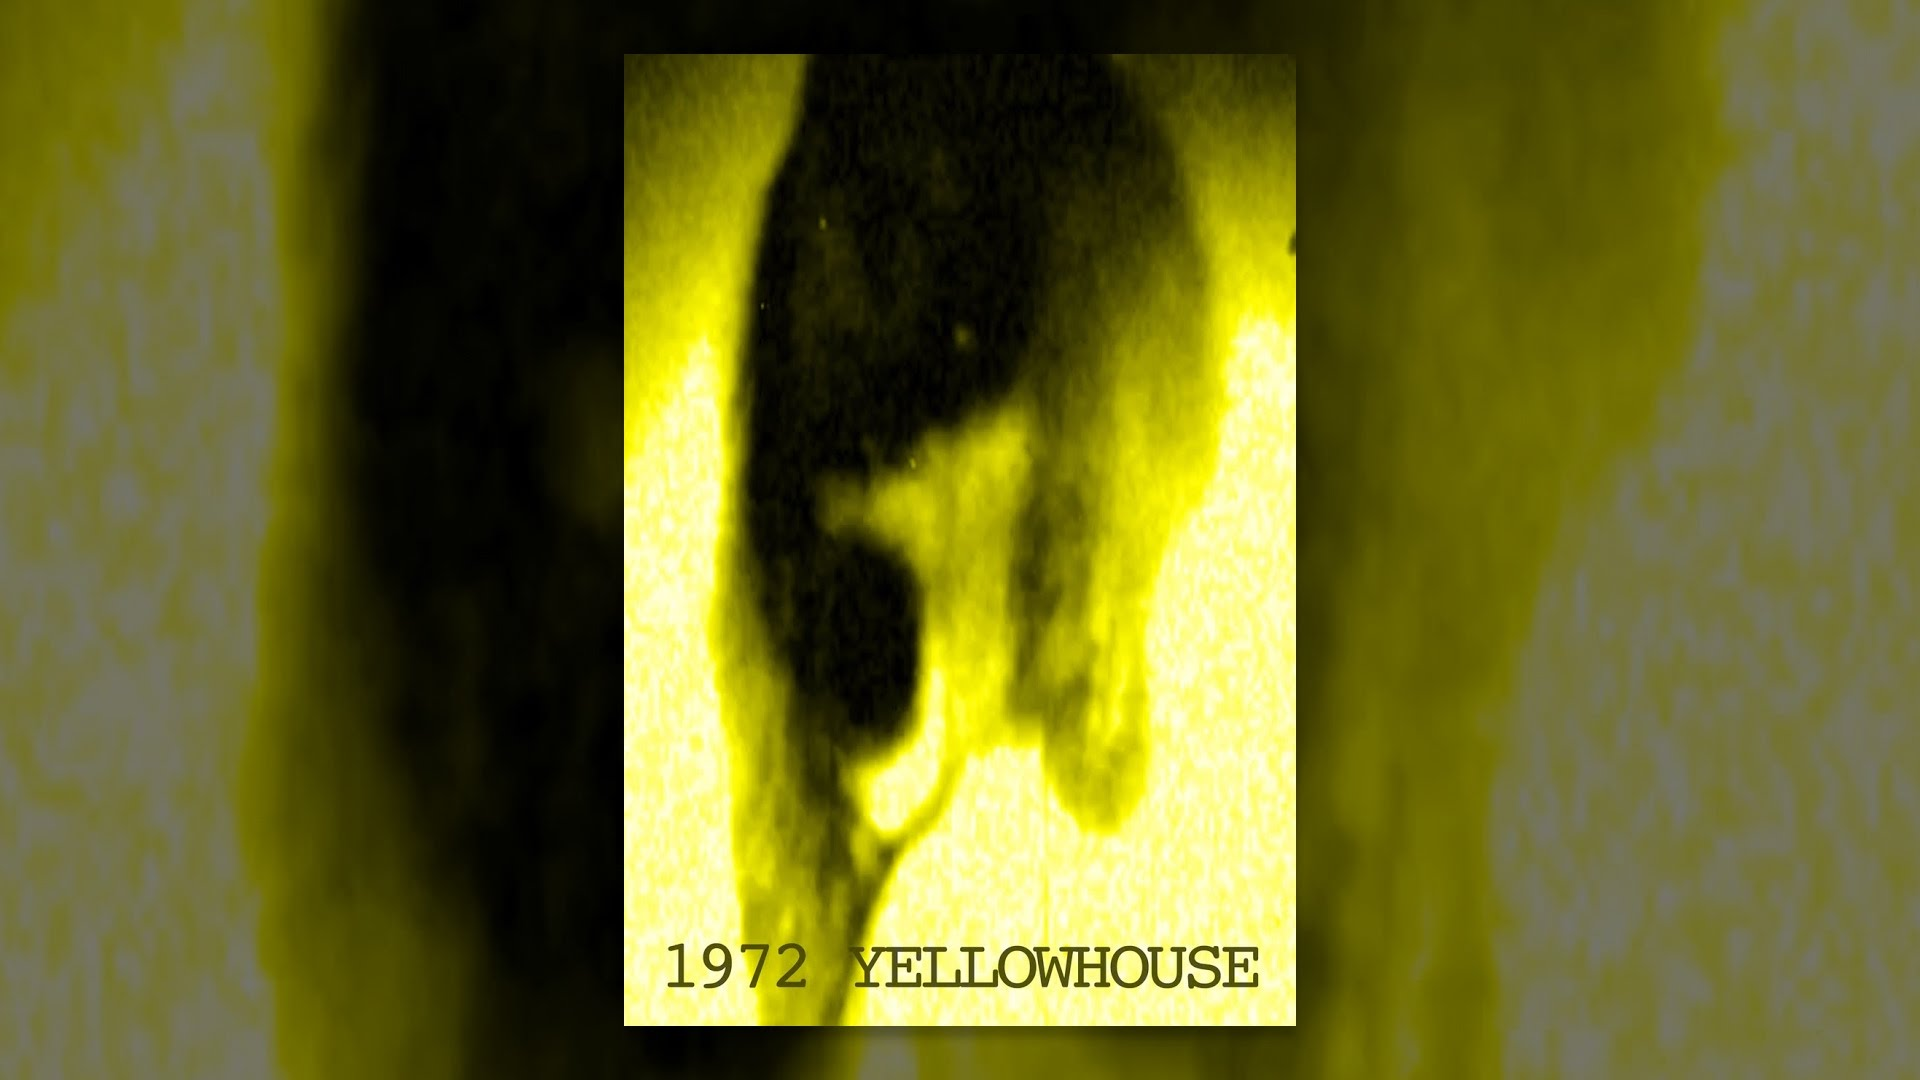 1972 yellow house - youtube